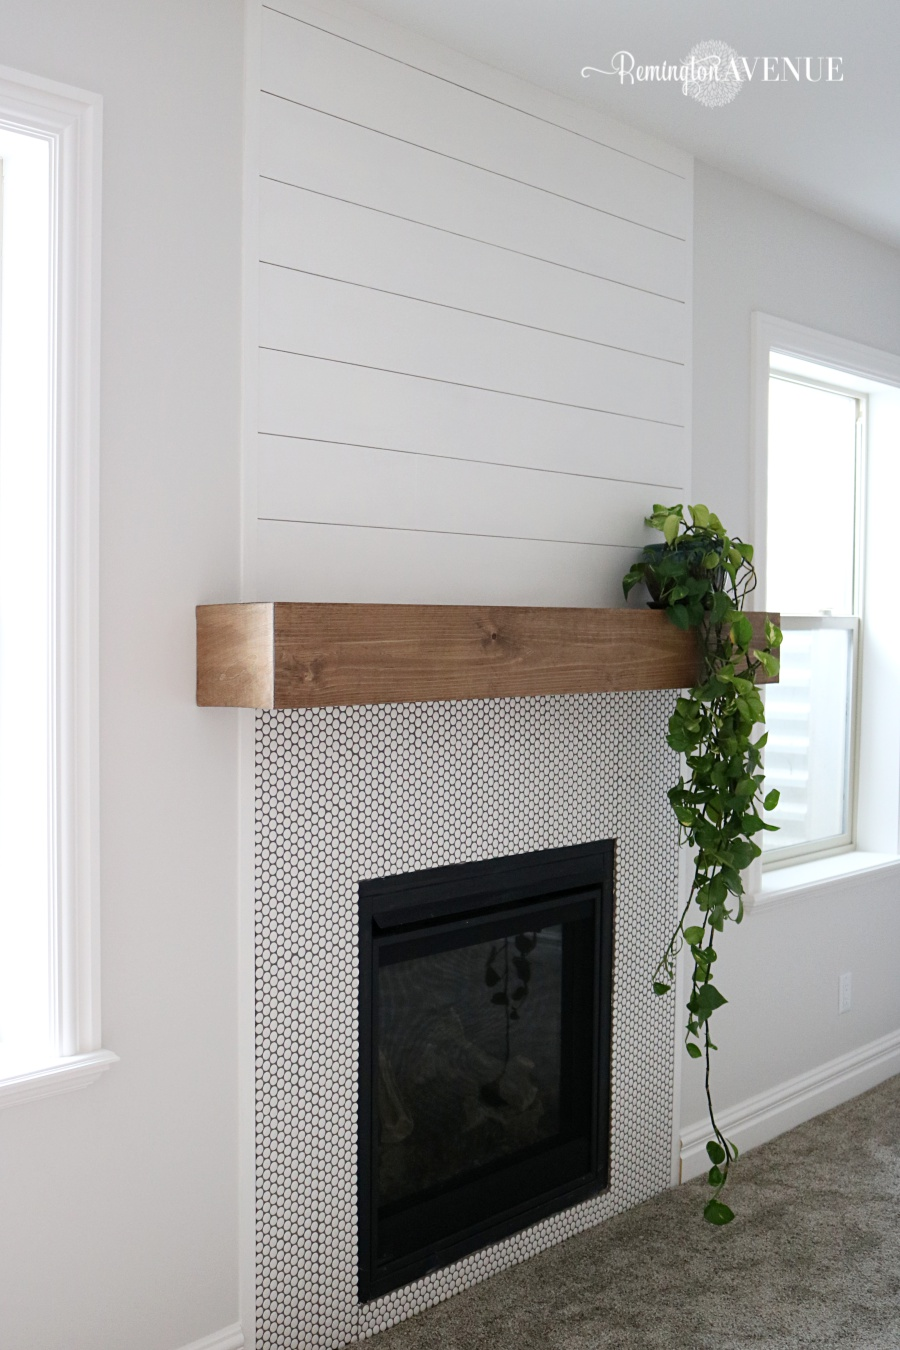 easy diy wood mantel remington avenue floating shelf plans course real chunk would hundreds dollars naturally chose make own was actually way easier then imagined extra tall